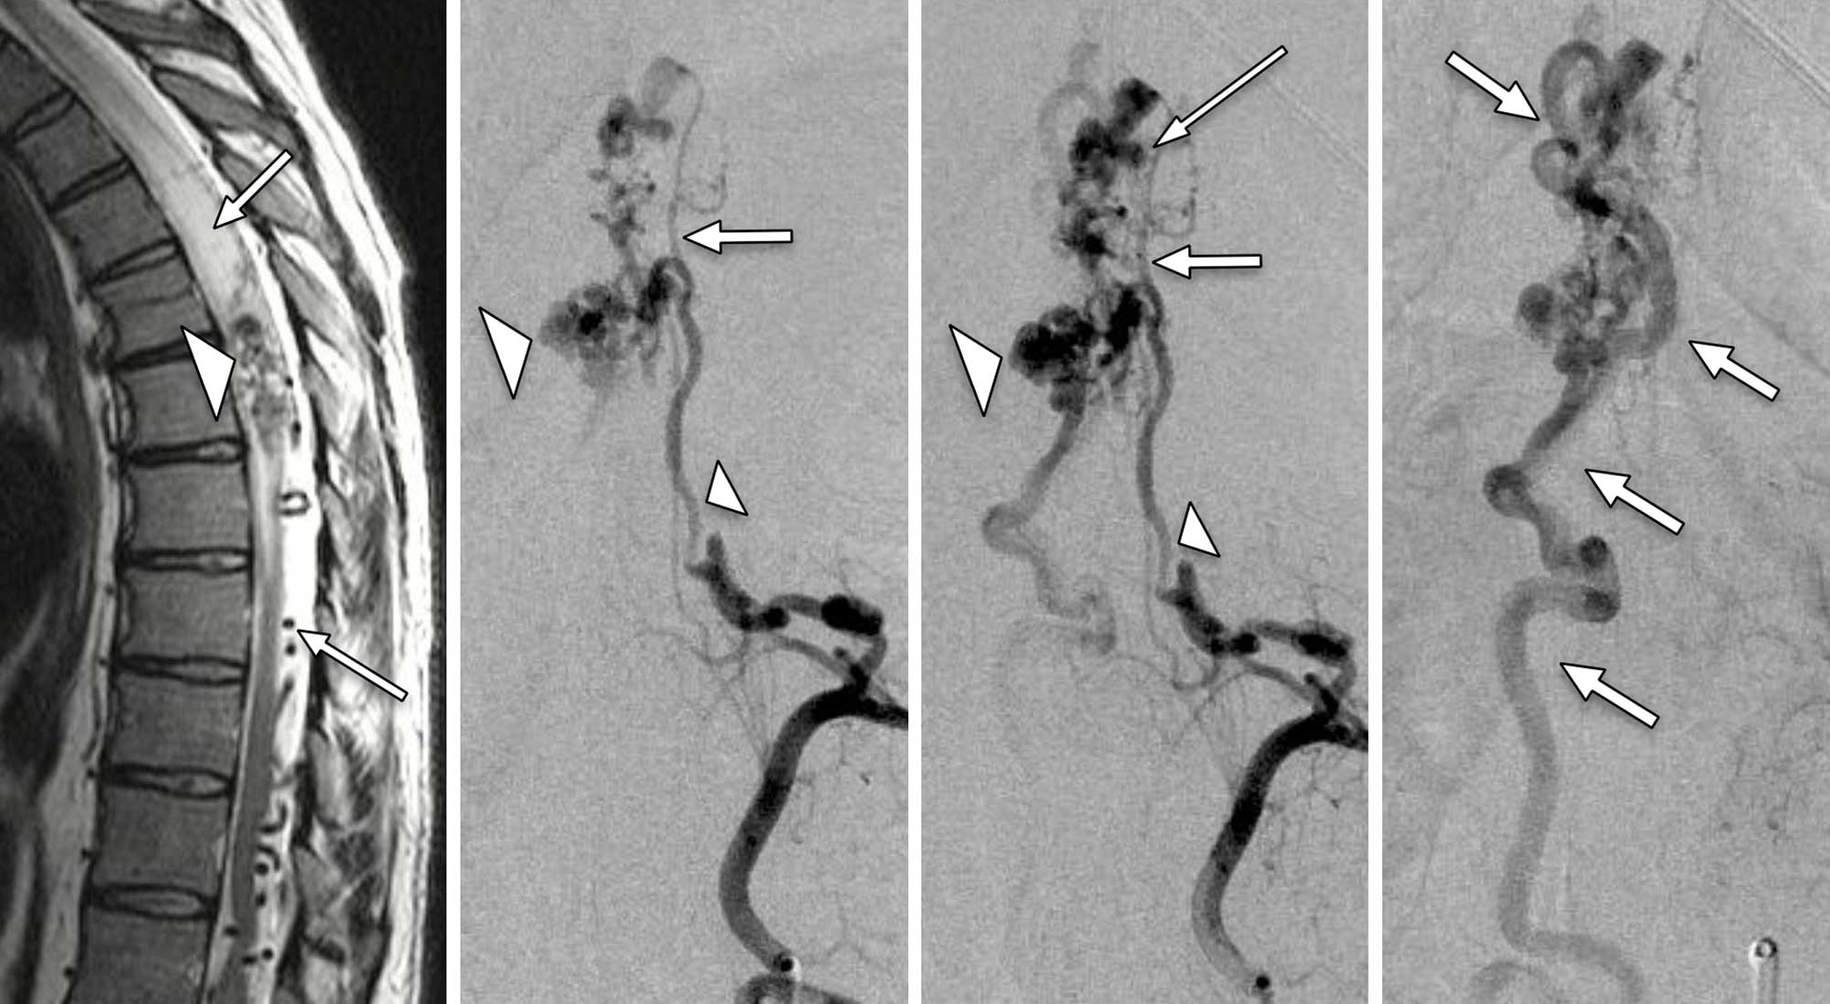 Figure 4: 38-year-old M with rapid onset mid-thoracic Brown-Sequard syndrome. T2W MRI demonstrates hyperintense intramedullary cord signal (upper arrow, left image), mid-thoracic nidus at the T6 vertebral level (arrow head), and serpiginous intra-dural flow voids (bottom arrow, left image). Left T7 segmental artery angiography in demonstrate a mid-thoracic intramedullary AVM nidus (large arrow head, center images). The dominant and most direct supply arises from anterior spinal arterial feeders (small arrow head) supplied by the left T7 radiculomedullary artery. Several nidal aneurysms are noted. Tortuous, arterialized perimedullary veins (arrows, right image) drain the nidus.